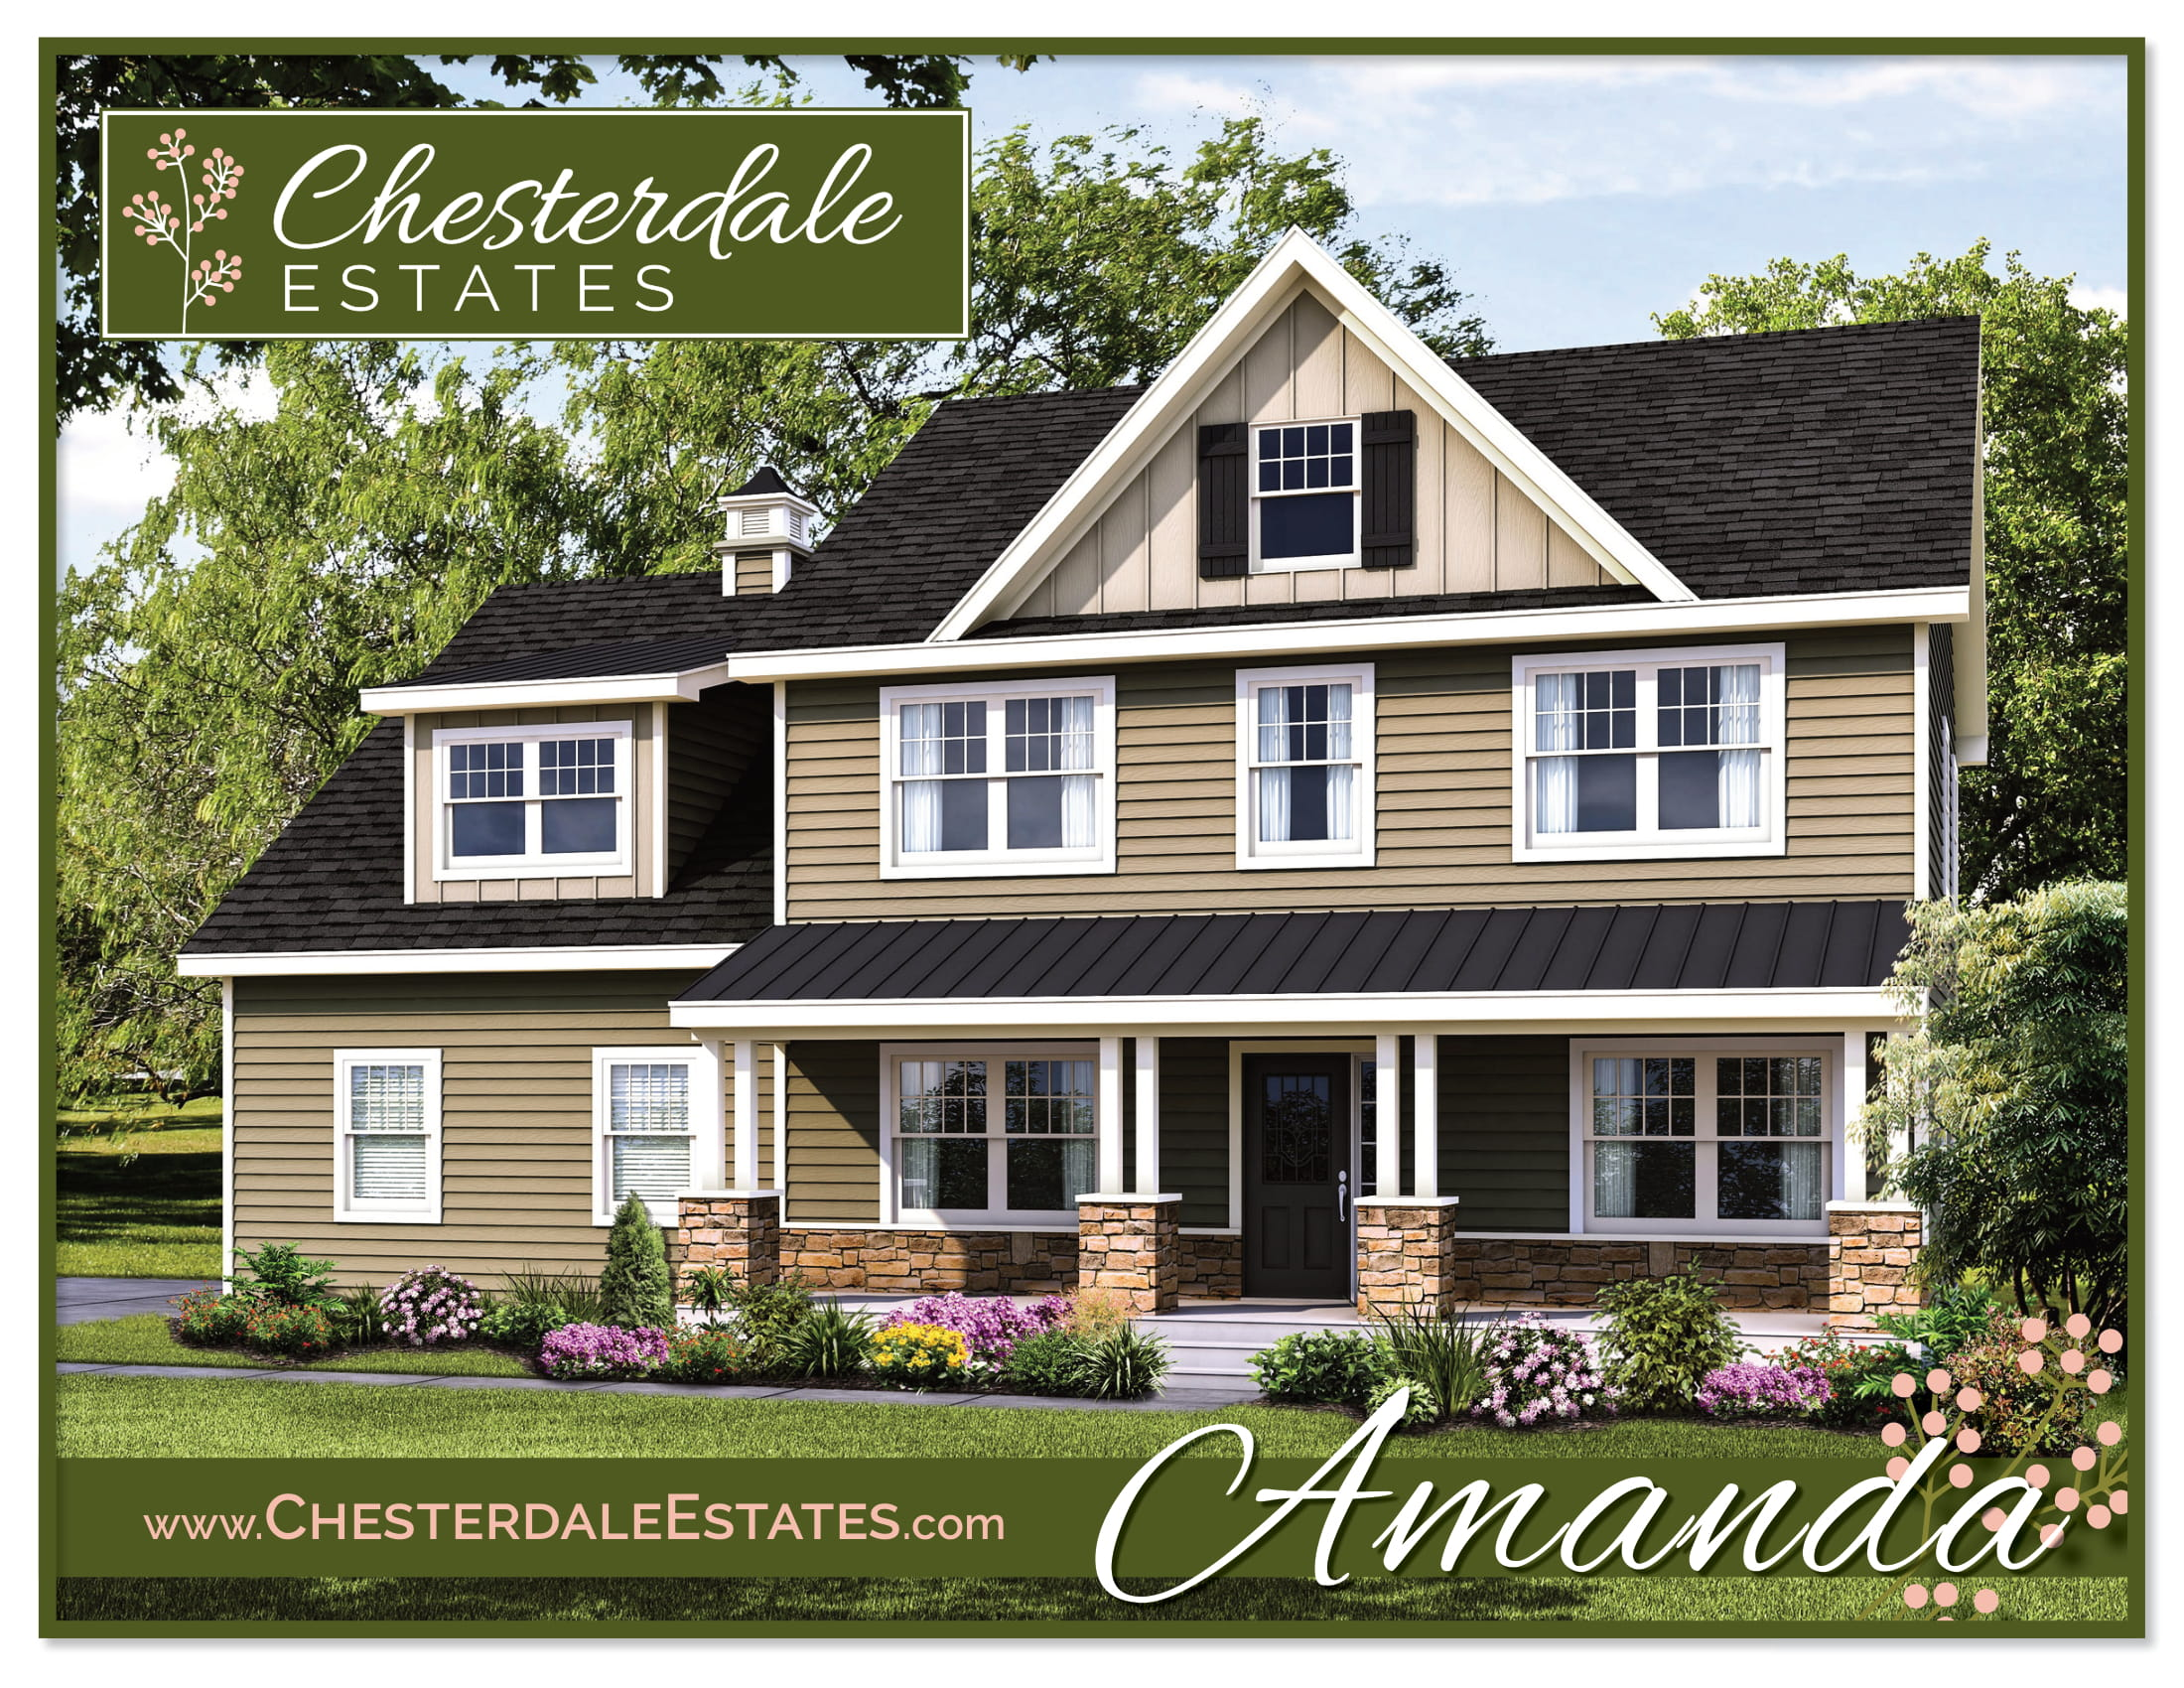 Christopher Ogden Middletown Ny Real Estate Theamanda Chesterdale 1